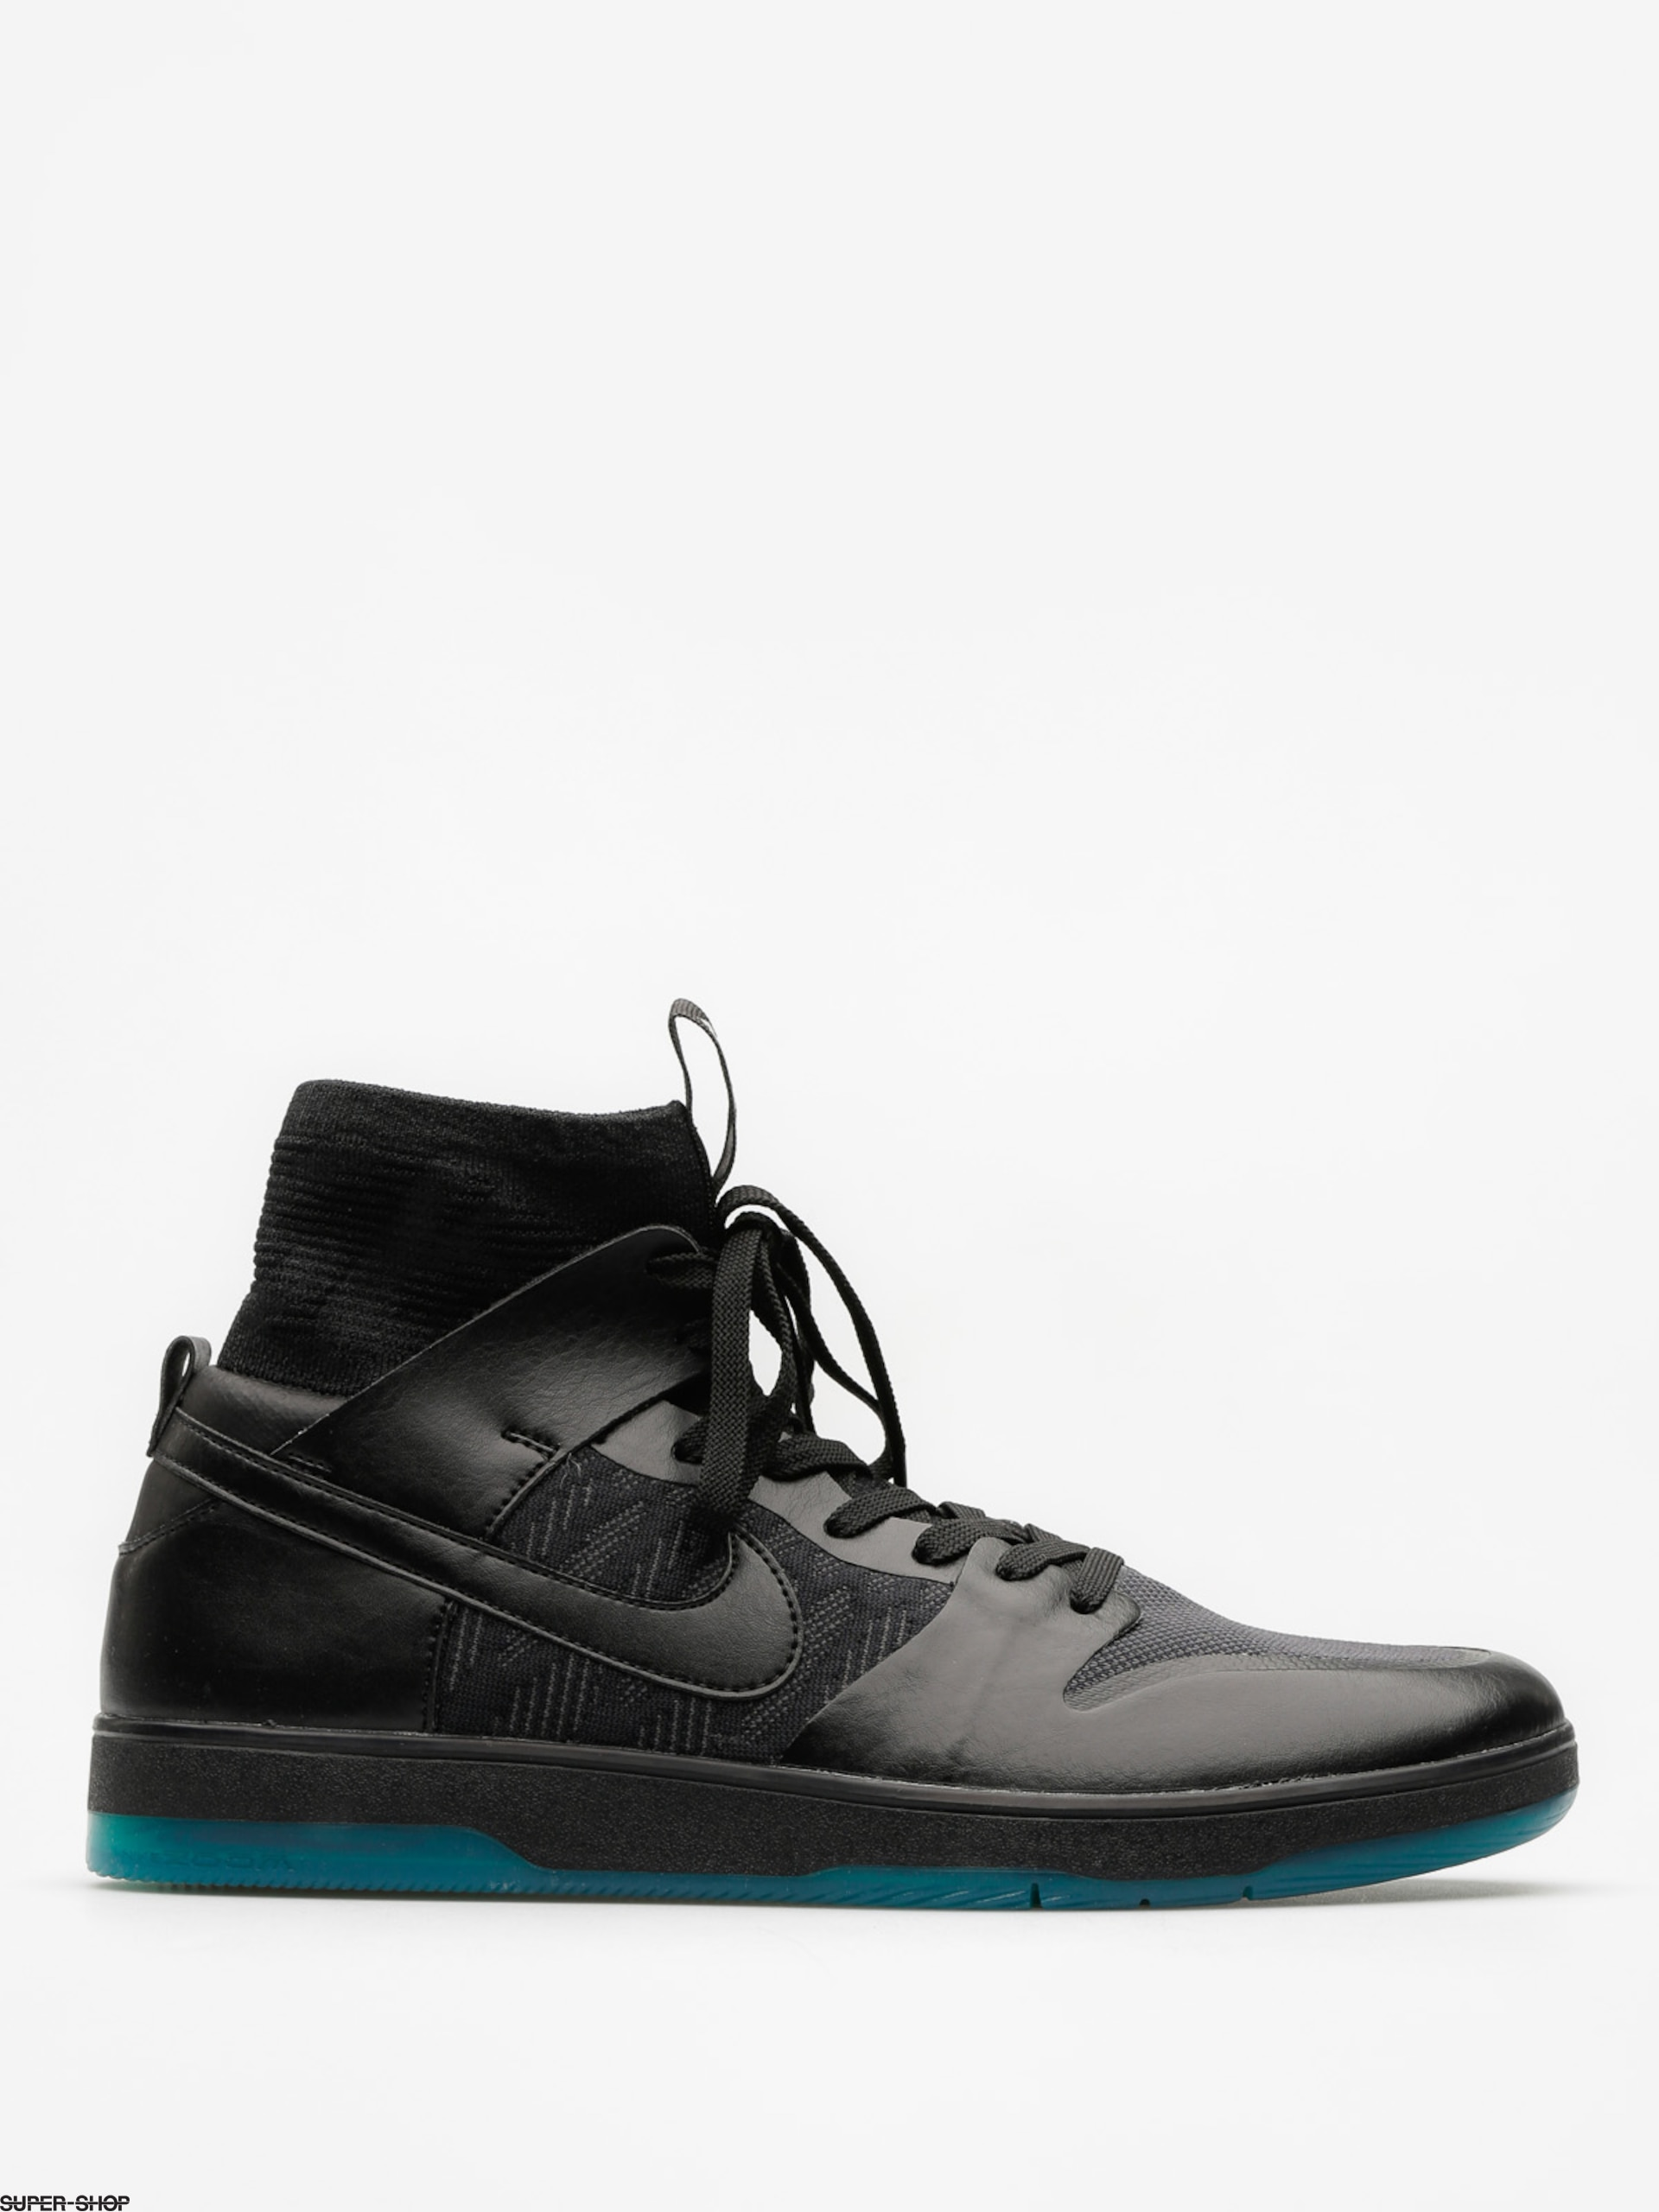 Nike SB Shoes Zoom Dunk High Elite (black/black dk atomic teal)